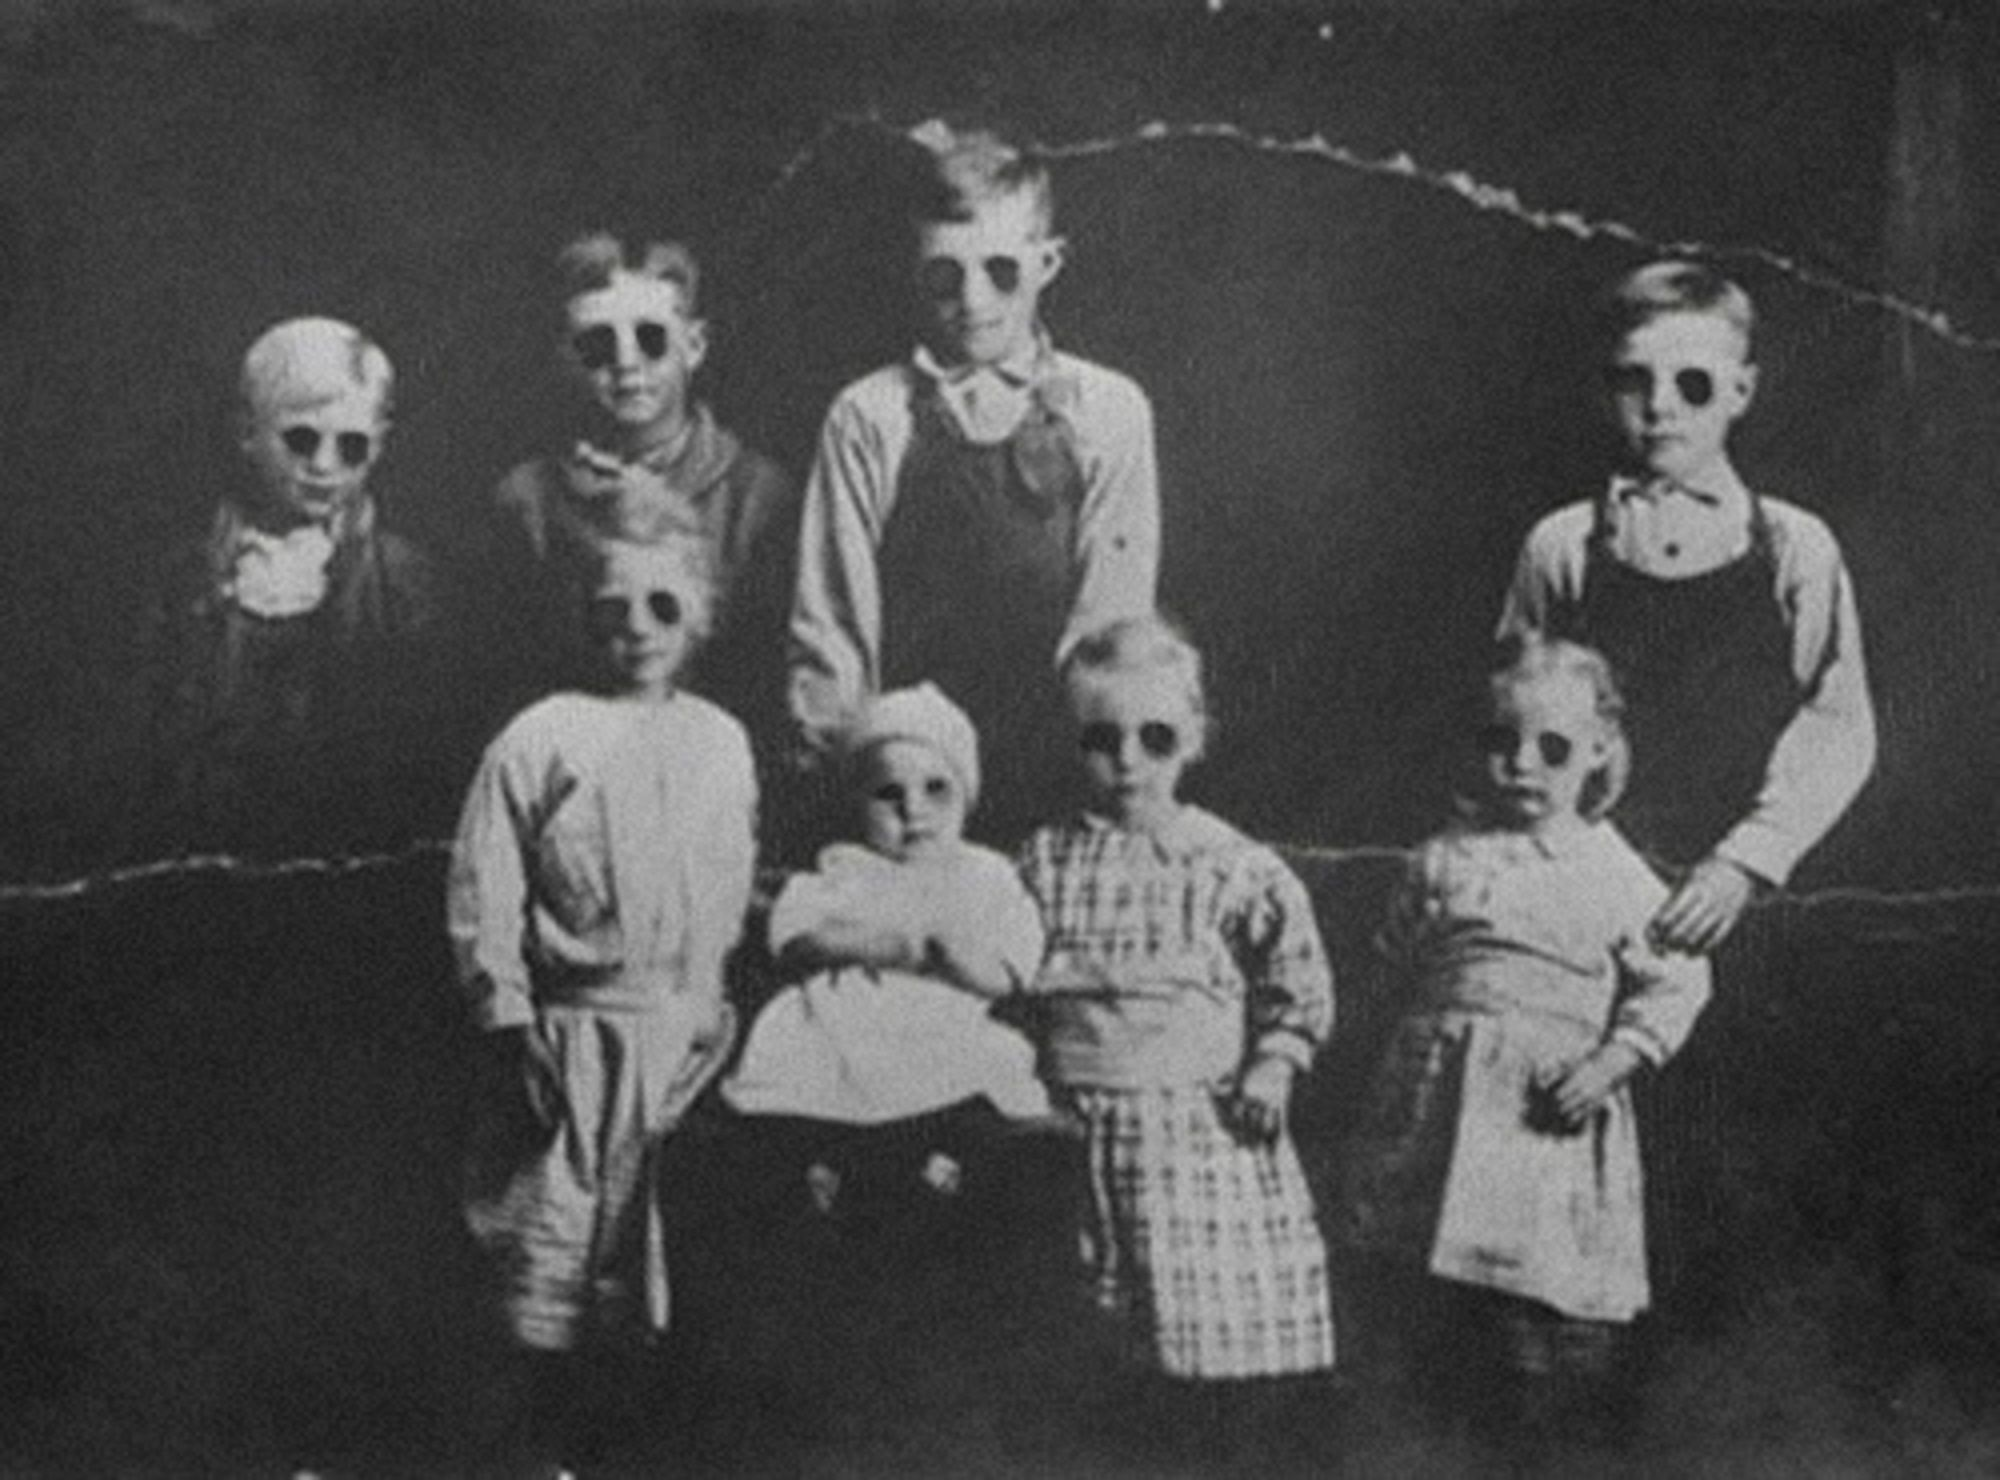 -http://static3.therichestimages.com/cdn/568/420/90/cw/wp-content/uploads/2014/10/Old-Creepy-Photos-Black-Eyed-Kids.jpg